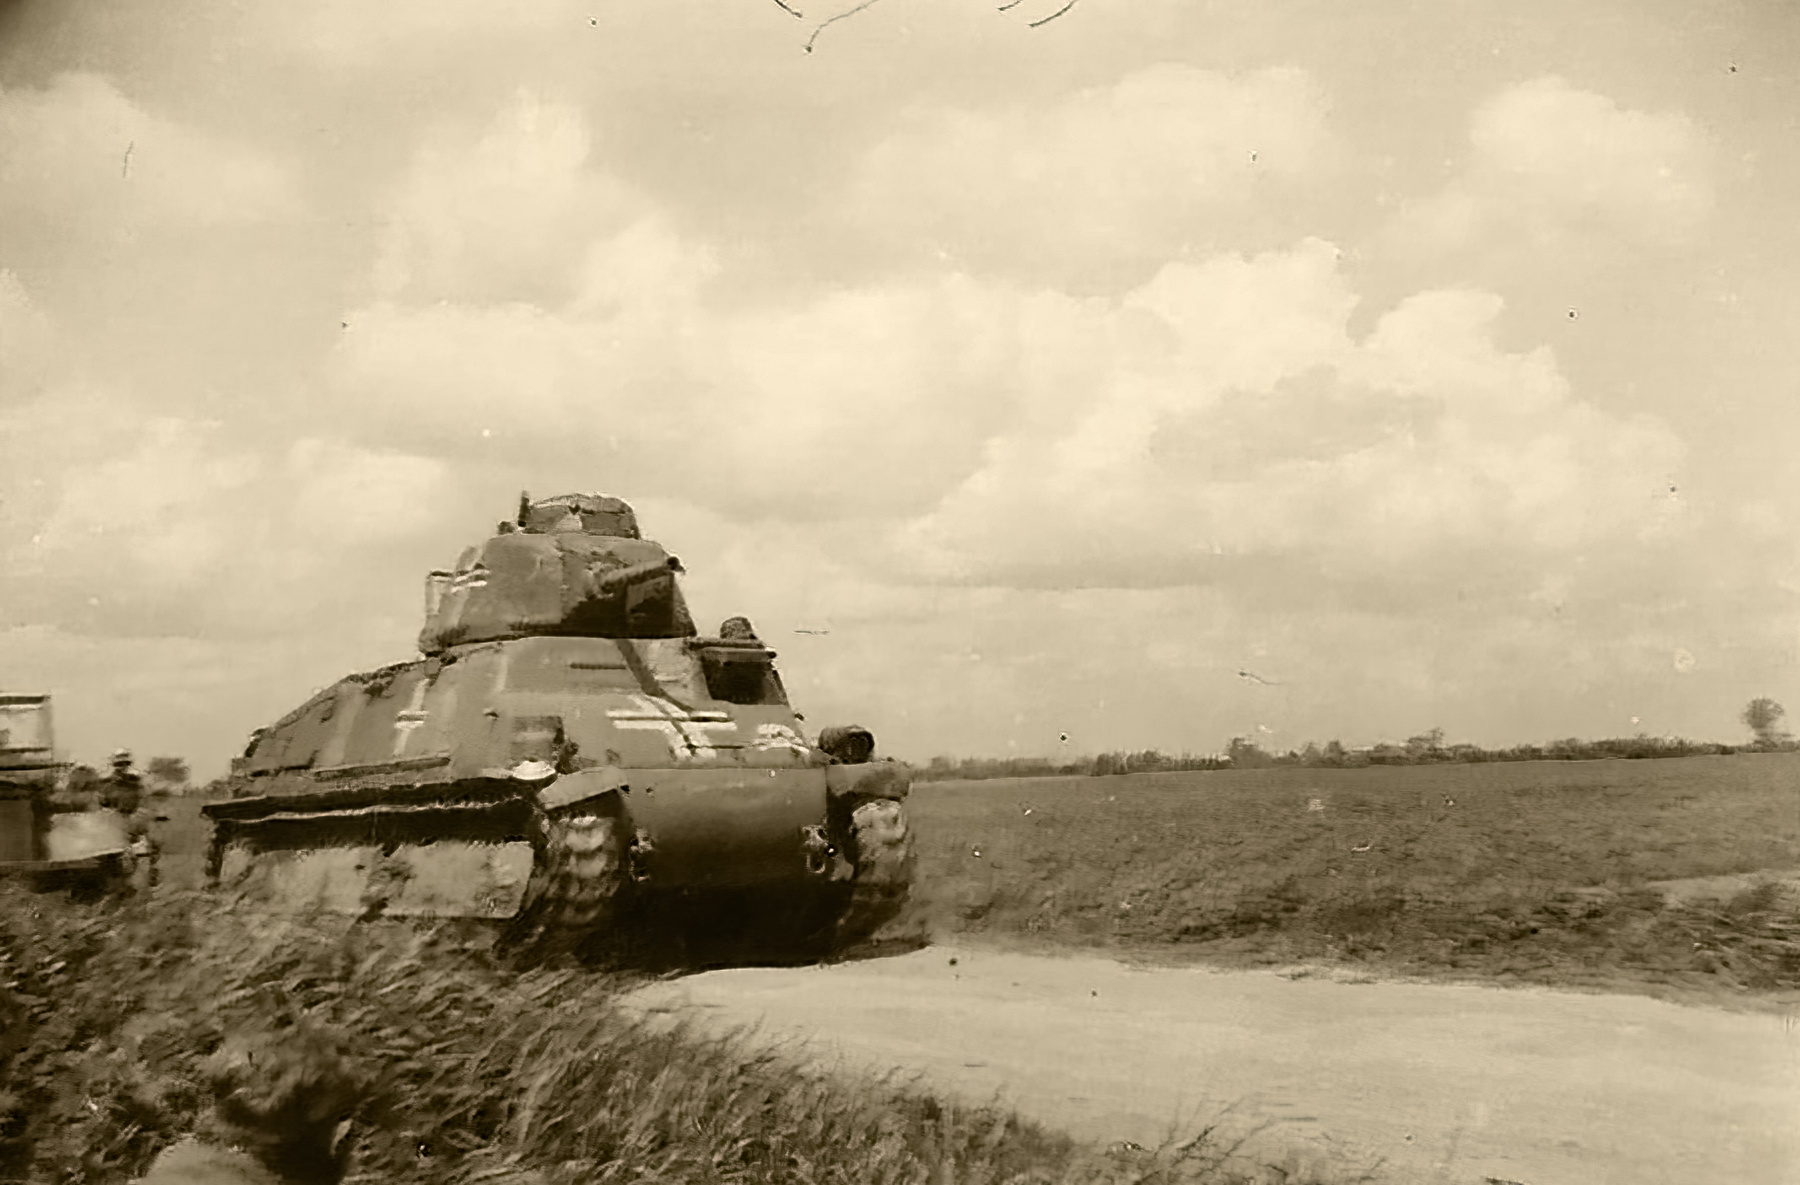 French built Somua S35 in use with Waffen SS Totenkopf France 1940 ebay 01